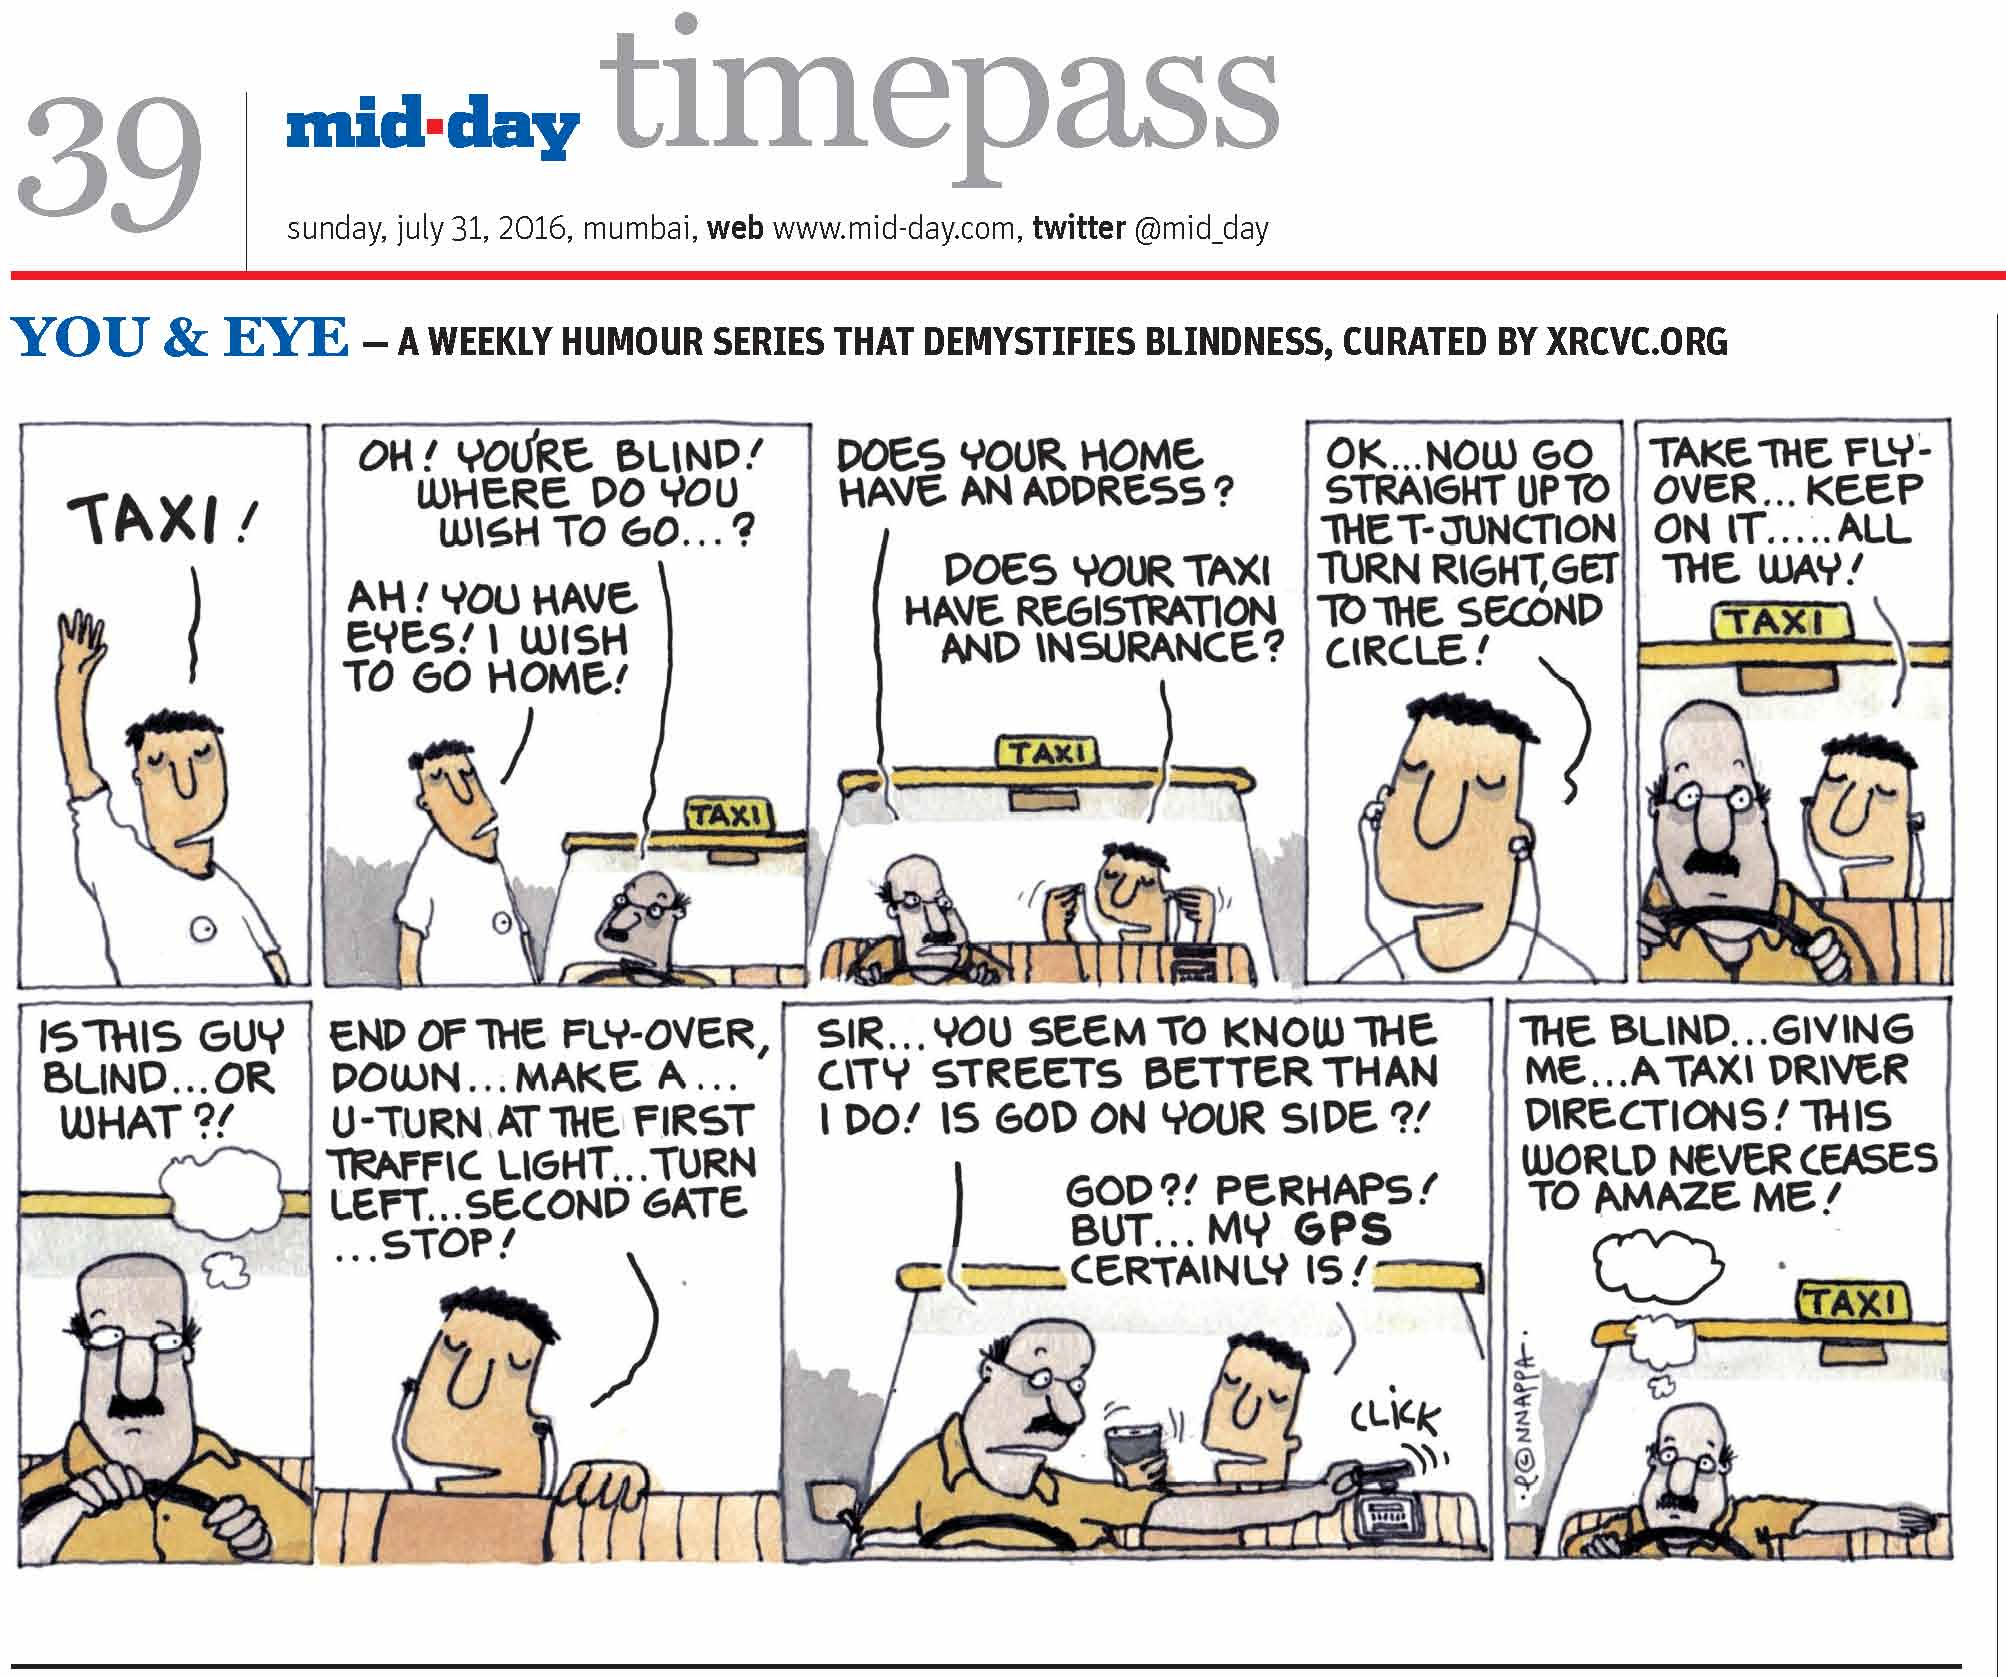 Page 39 mid-day timepass, sunday, july 31, 2016, mumbai, web: www.mid-day.com, twitter @mid_day YOU & EYE – A WEEKLY HUMOUR SERIES THAT DEMYSTIFIES BLINDNESS, CURATED BY XRCVC.ORG Image description: A cartoon strip with 9 frames… Frame 1: (The visually impaired man – BG – with his right arm stretched straight upwards) BG: TAXI! Frame 2: (BG speaking to a taxi driver who has stopped near him) Driver: Oh! You're blind! Where do you wish to go…? BG: Ah! You have eyes! I wish to go home! Frame 3: (BG sitting in the backseat of the taxi putting on his earphones as he speaks with the driver) Driver: Does your home have an address? BG: Does your taxi have registration and insurance? Frame 4: (A close-up of BG as he continues talking) BG: OK… now go straight up to the T-junction, turn right, get to the second circle! Frame 5: (A close-up of the driver behind the wheel who appears dumbfounded as BG sits in the backseat with his earphones on and speaks) BG: Take the flyover… keep on it… all the way! Frame 6: (A close-up of the driver behind the wheel as he looks towards BG from the corner of his eye) A thought bubble represents that he is thinking: Is this guy blind… or what?! Frame 7: (A close-up of BG with his hand on the backrest of the front seat as he continues talking) BG: End of the flyover, down… make a… U-turn at the first traffic light… turn left… second gate… stop! Frame 8: (The driver handling the taxi-meter while BG in the backseat of the taxi holds a mobile phone is his right hand as they speak) Driver: Sir… you seem to know the city streets better than I do! Is god on your side?! BG: God?! Perhaps! But… my GPS certainly is! Frame 9: (A close-up of the driver with his right hand on the wheel and his left arm resting on the backrest of his seat as he marvels with eyebrows raised) A thought bubble represents that he is thinking: The blind… giving me… a taxi driver directions! This world never ceases to amaze me! (Signed Ponnappa, in Frame 9)